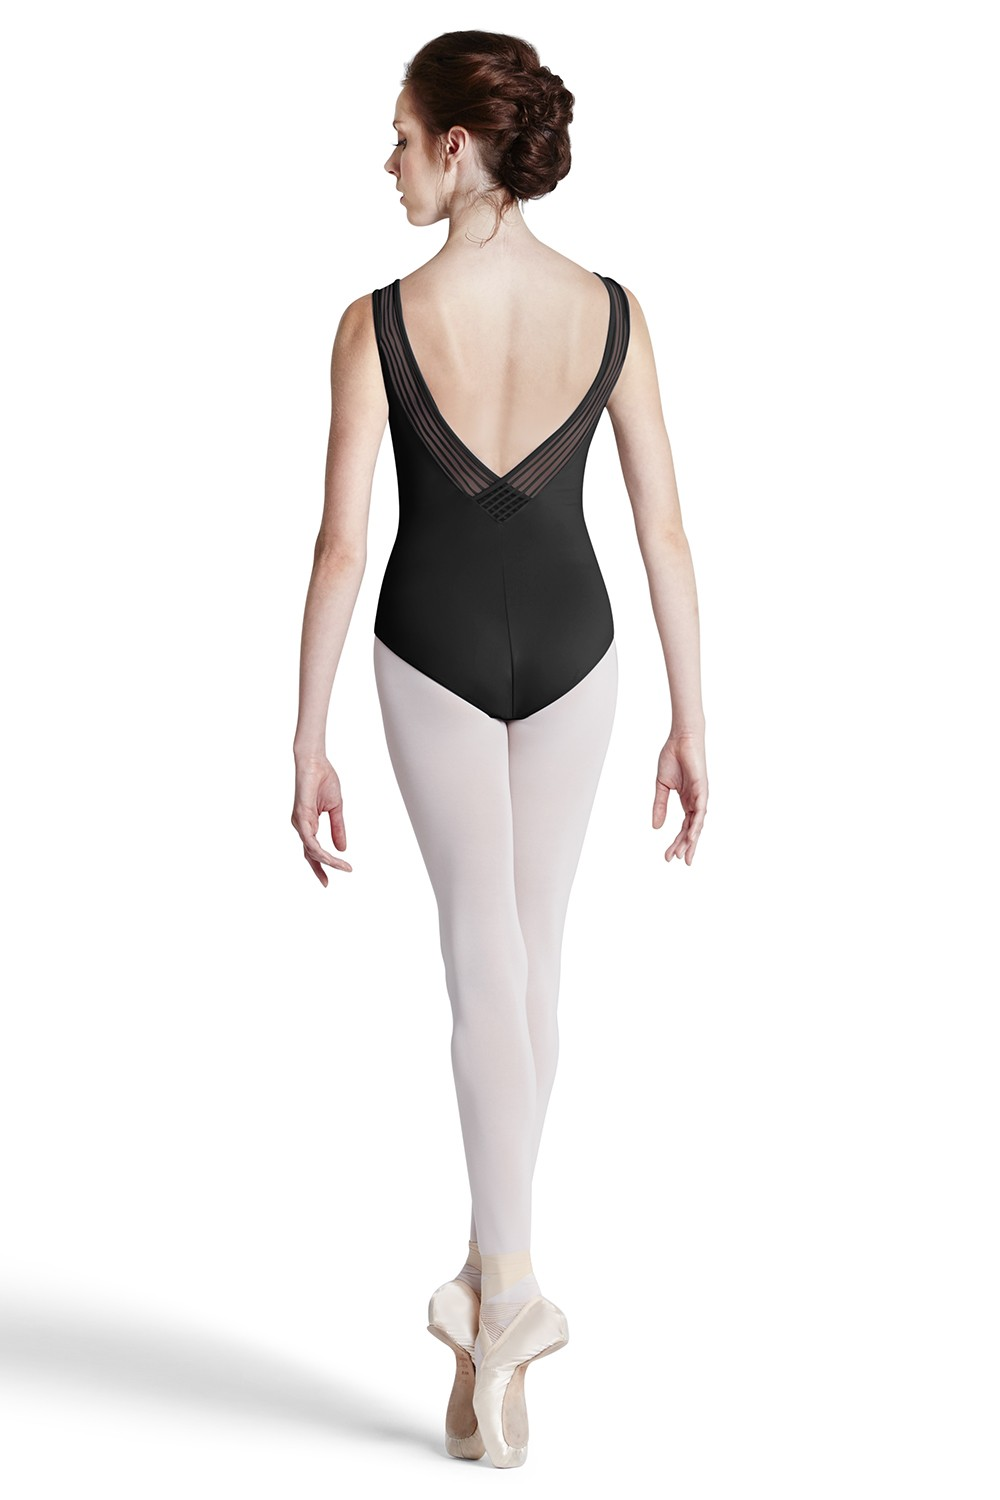 Body A Spallina Larga Con Scollo Profondo A V Women's Dance Leotards